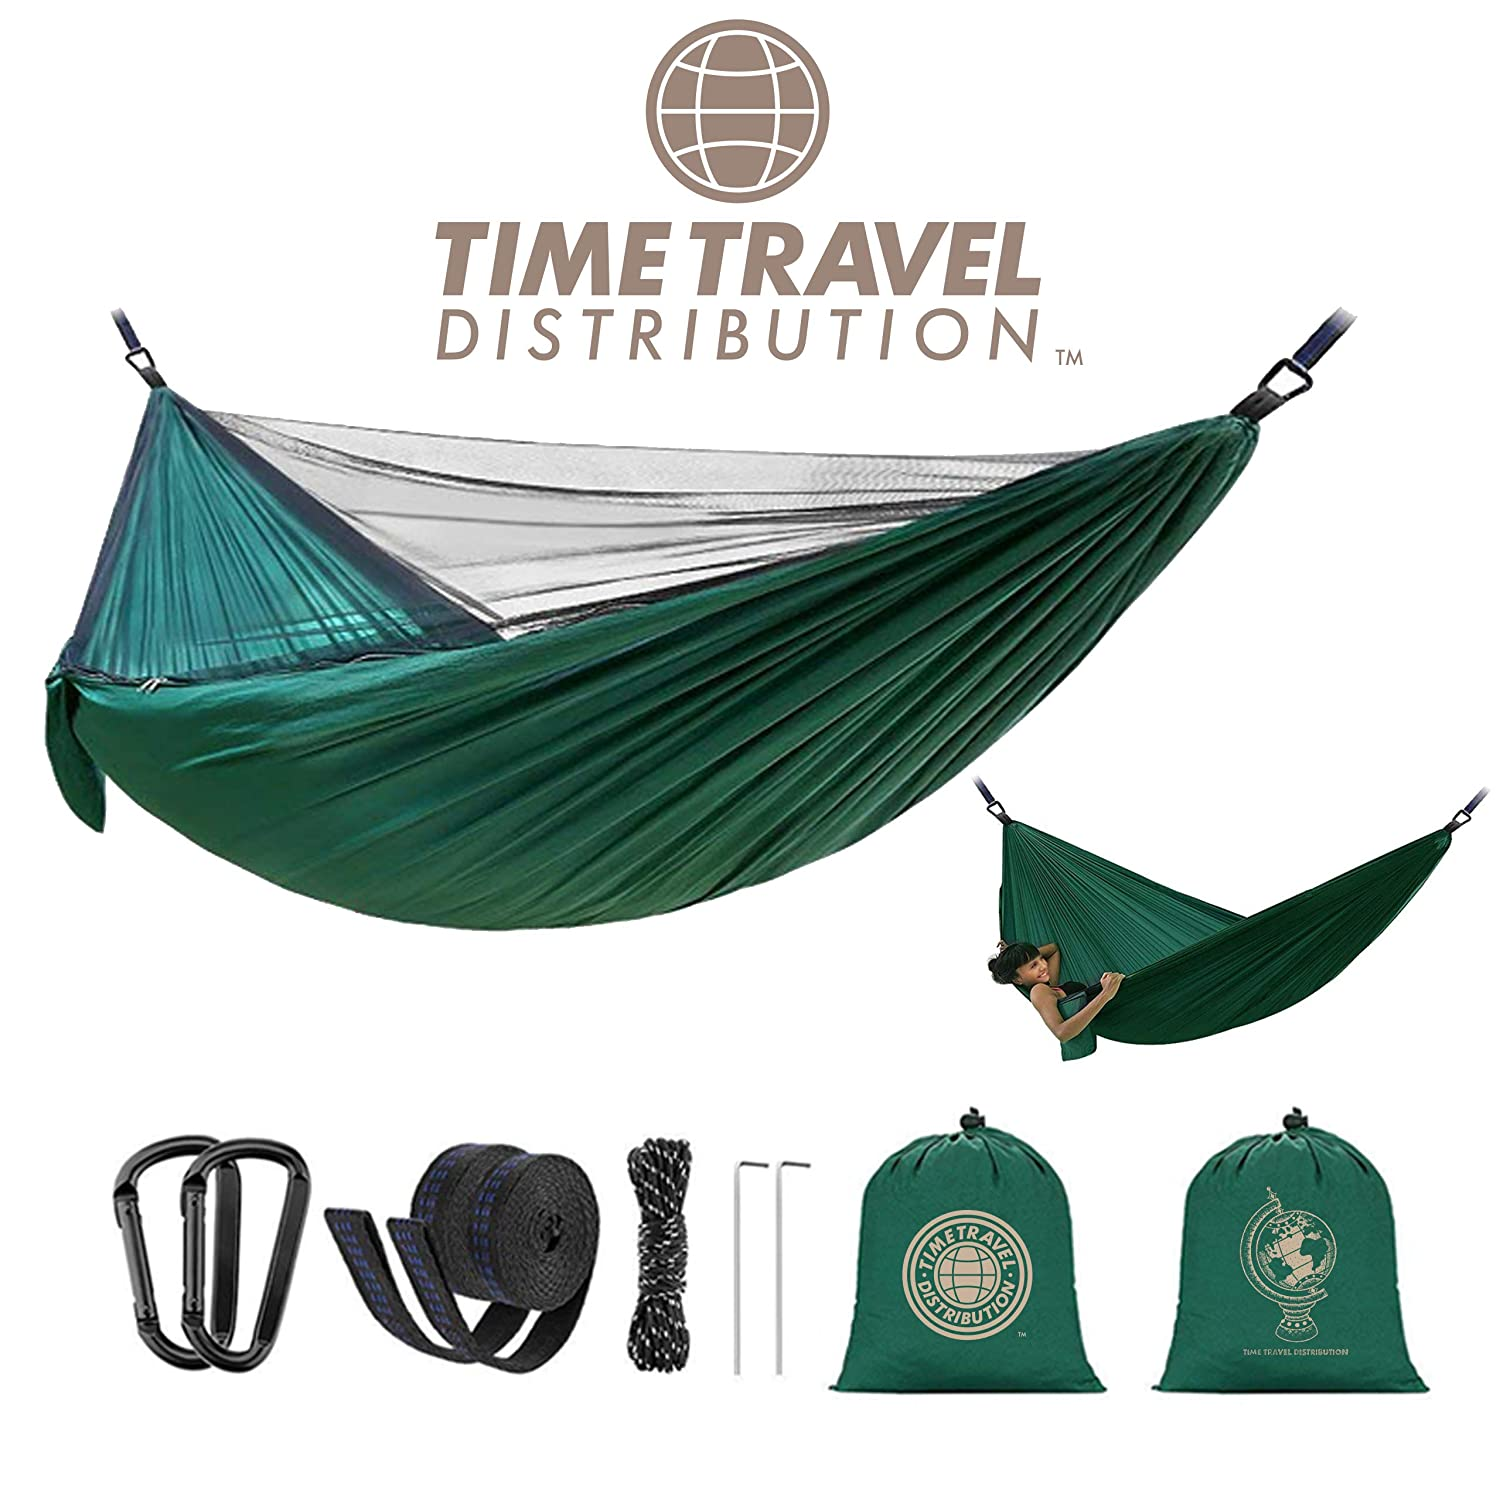 Time Travel Distribution Camping Hammock with Mosquito Net – Outdoor Travel, Hiking, Beach, Backpacking, Parachute Nylon Lightweight, Portable, Easy Assembly, Max Capacity 700lbs